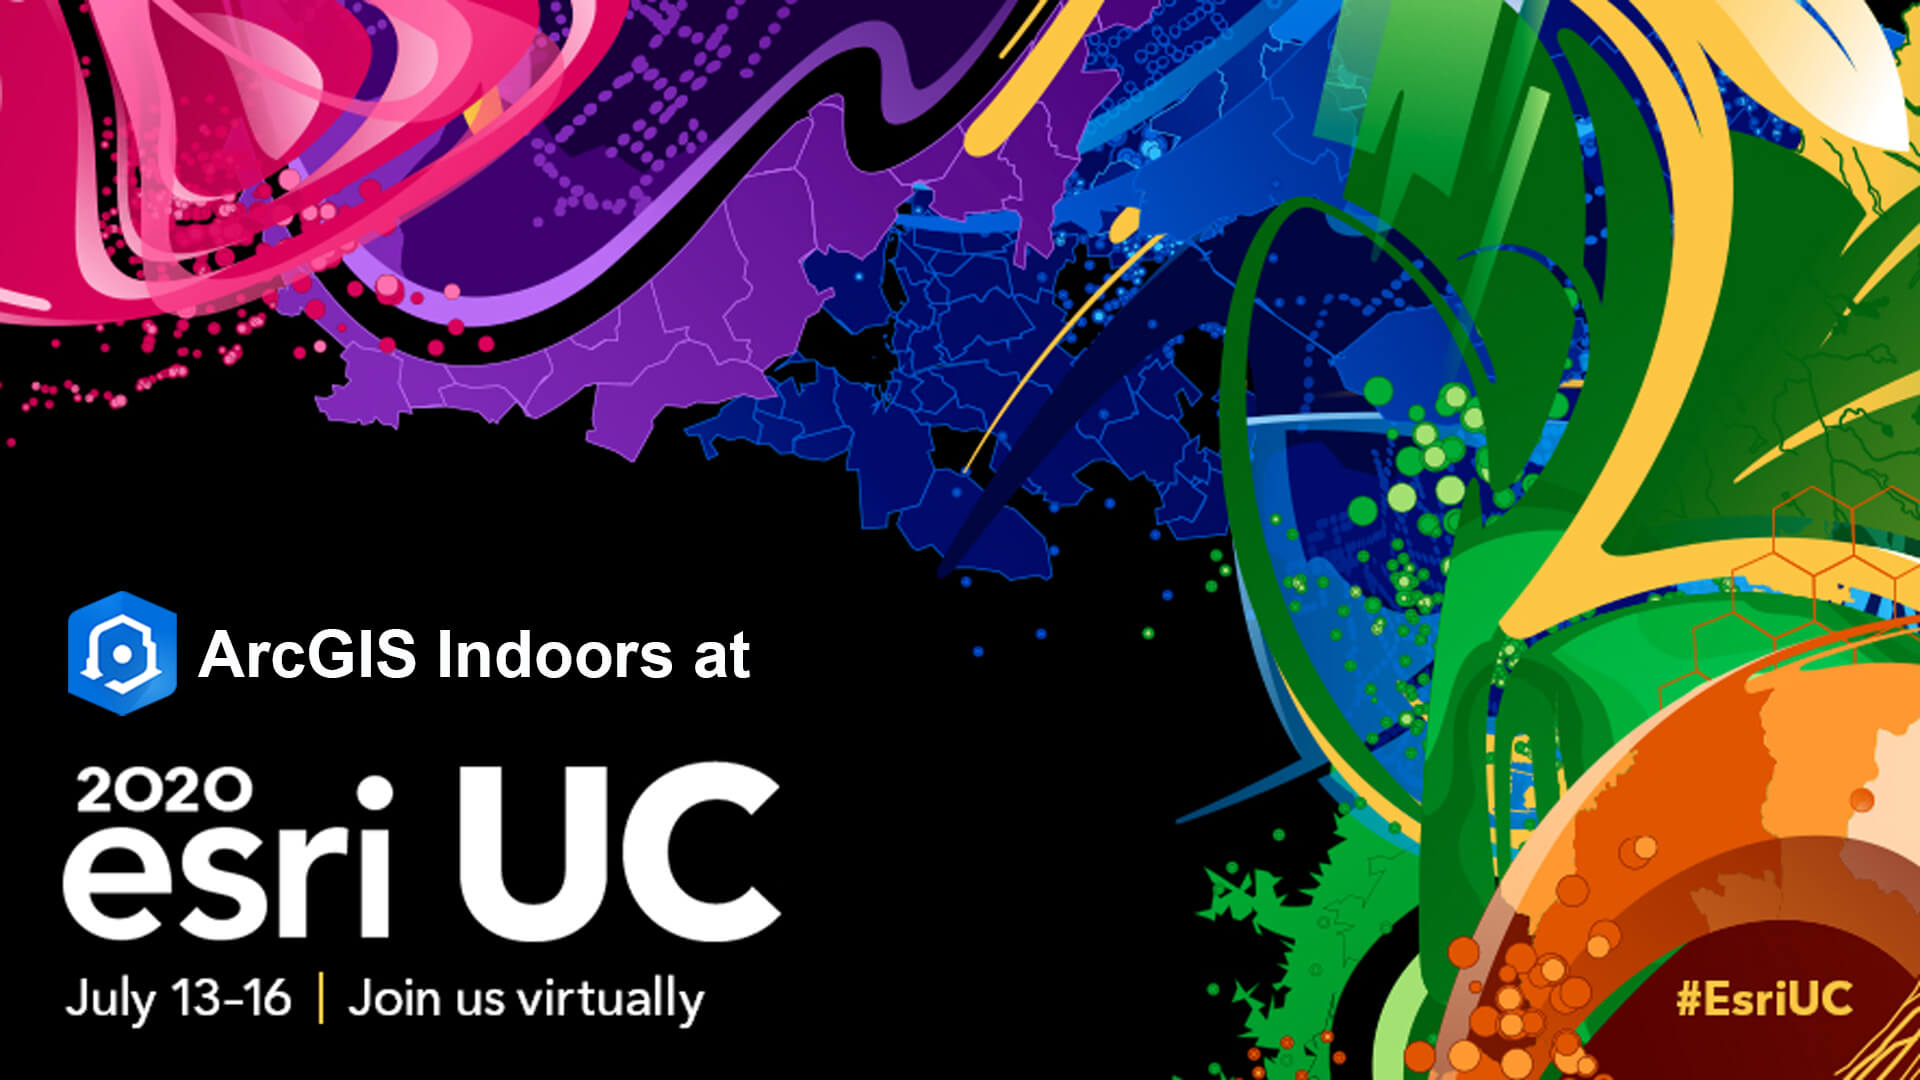 /wp-content/uploads/2020/07/ArcGIS-Indoors-at-2020-Esri-User-Conference-header-image-1.jpg